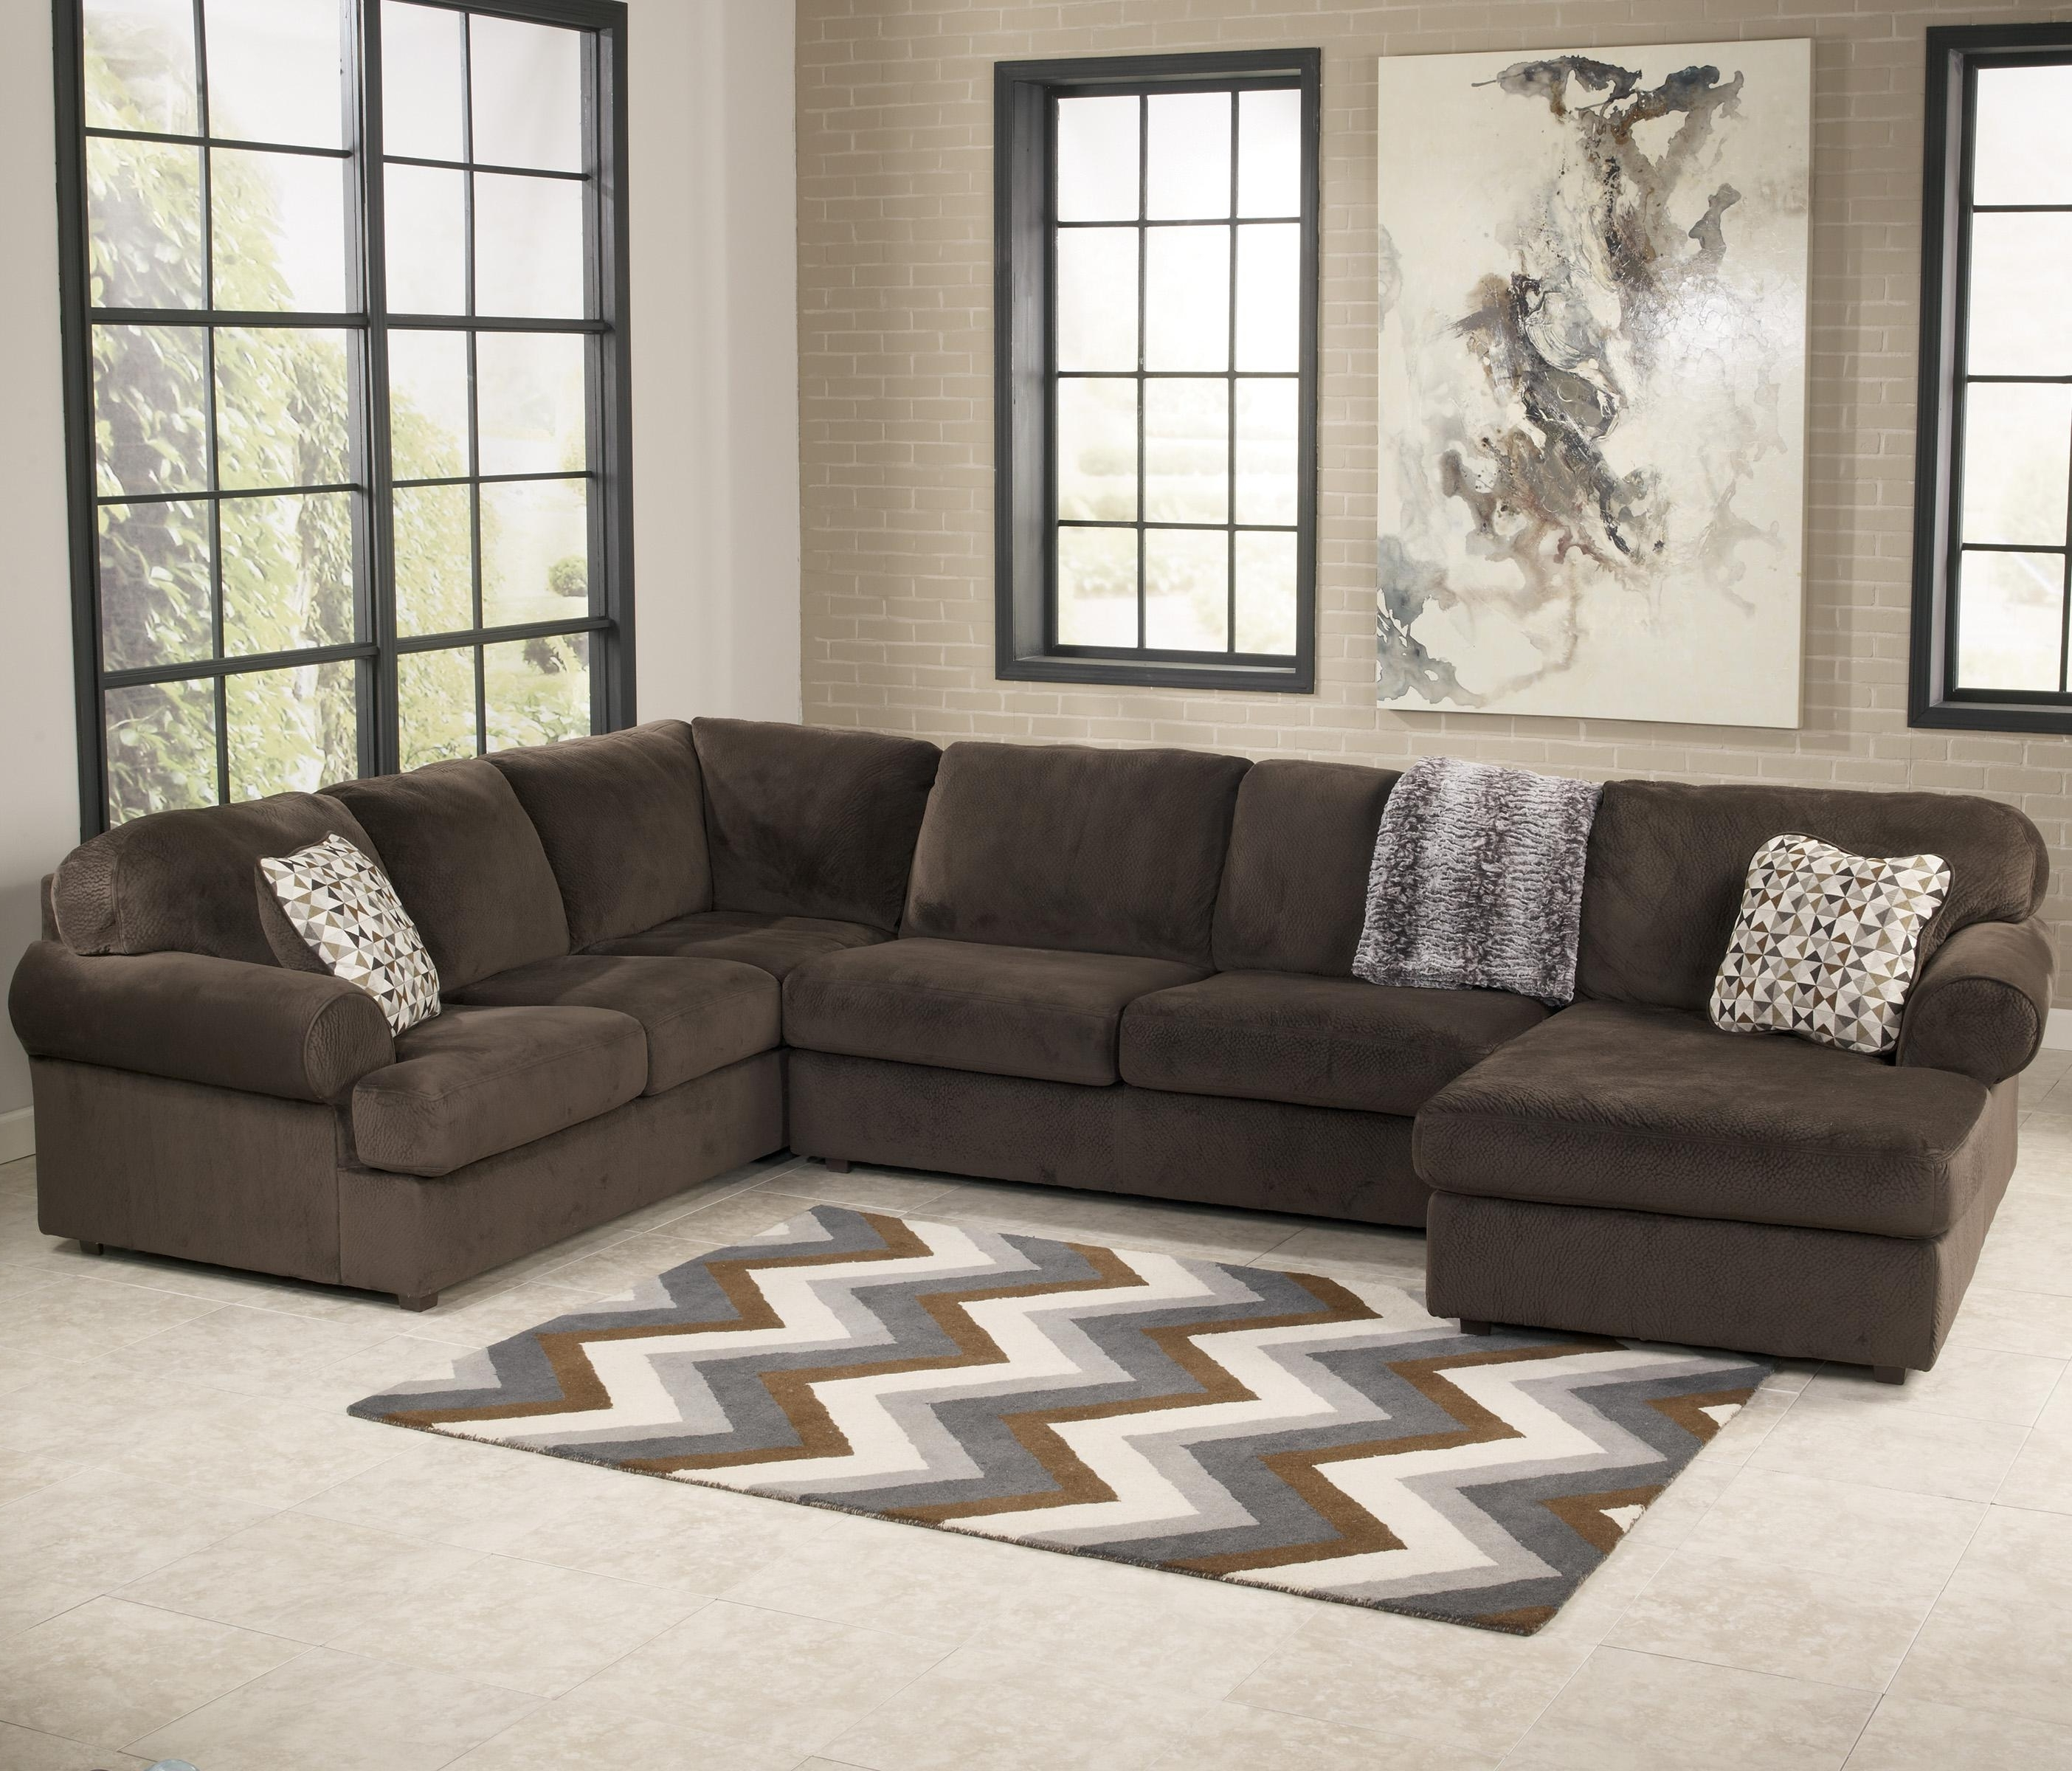 Chocolate Brown Sectional Sofa With Chaise (View 8 of 20)